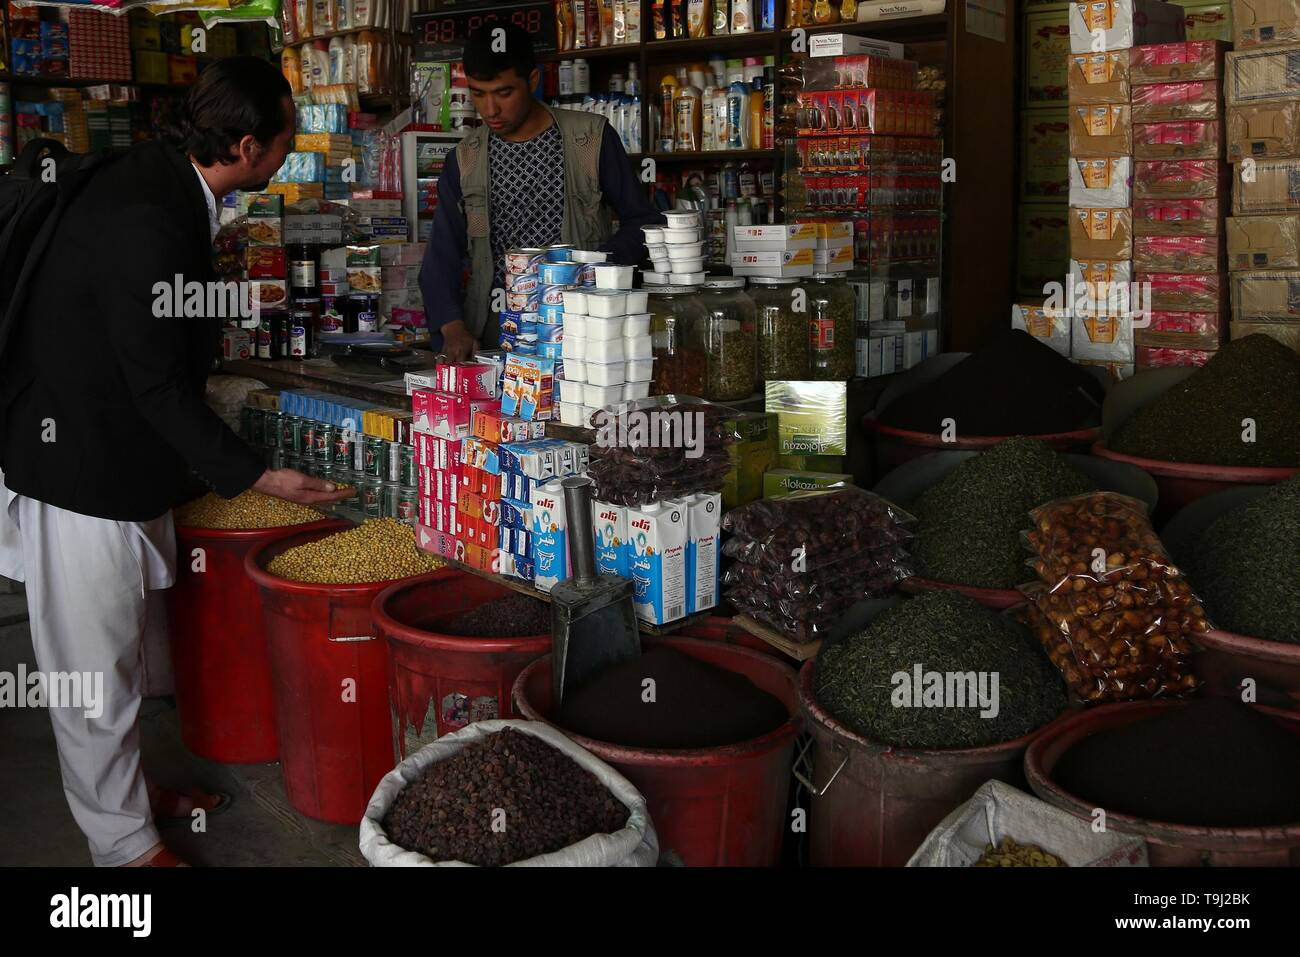 Kabul, Afghanistan. 19th May, 2019. An Afghan shopkeeper talks with a customer at his shop in Kabul, capital of Afghanistan, May 19, 2019. Credit: Sayed Mominzadah/Xinhua/Alamy Live News - Stock Image